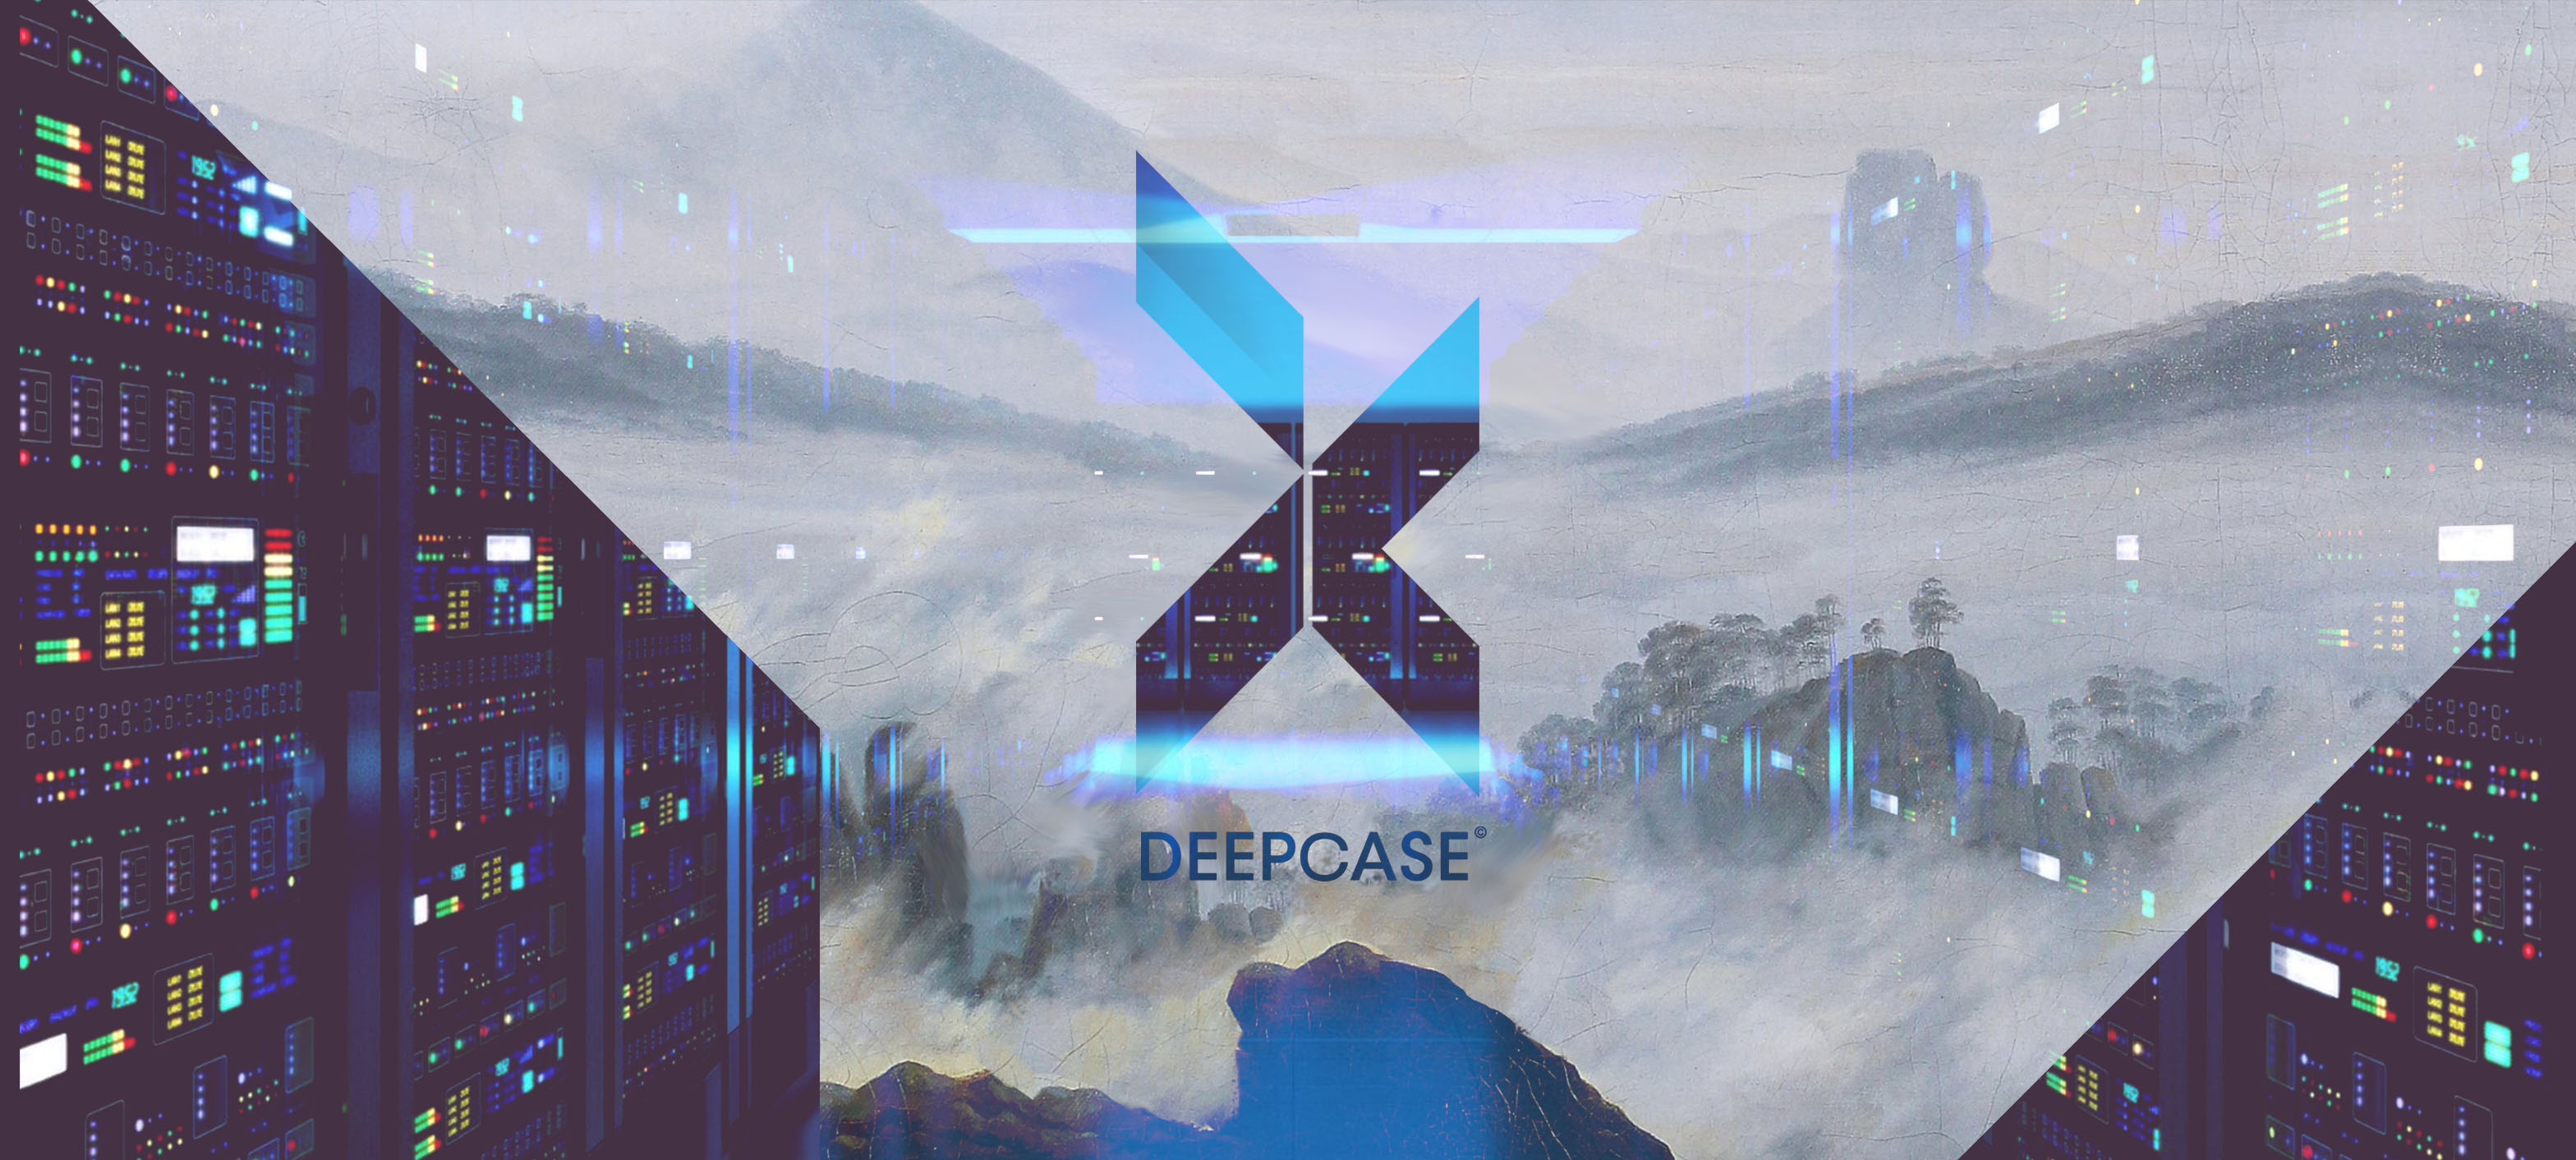 deepcase-discover yout mind